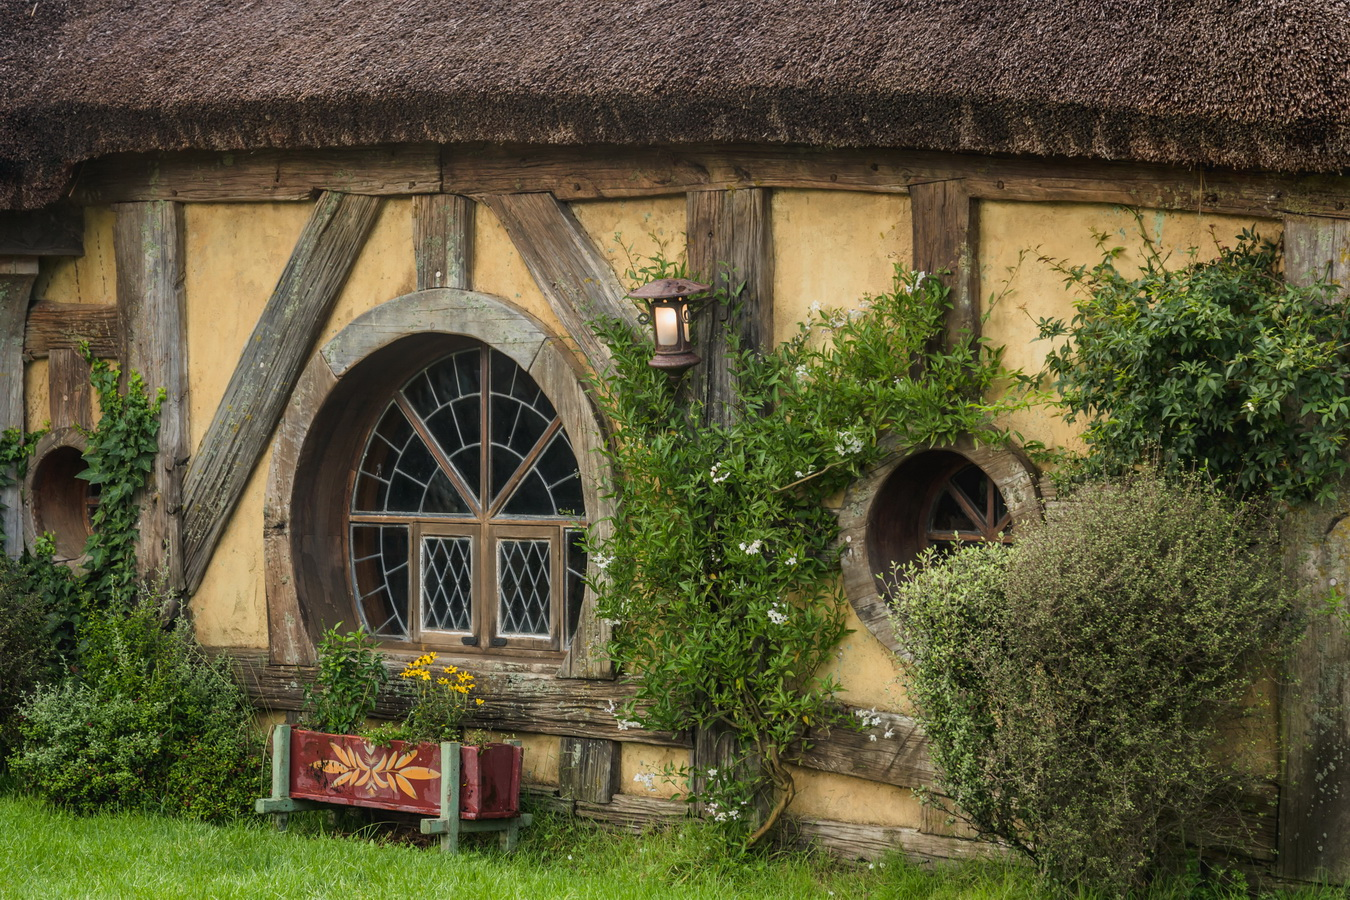 bar,The Hobbiton, The Shire,Хоббитшир, Удел, Хоббитания, Заселье, Край,Matamata, North Island ,New Zealand